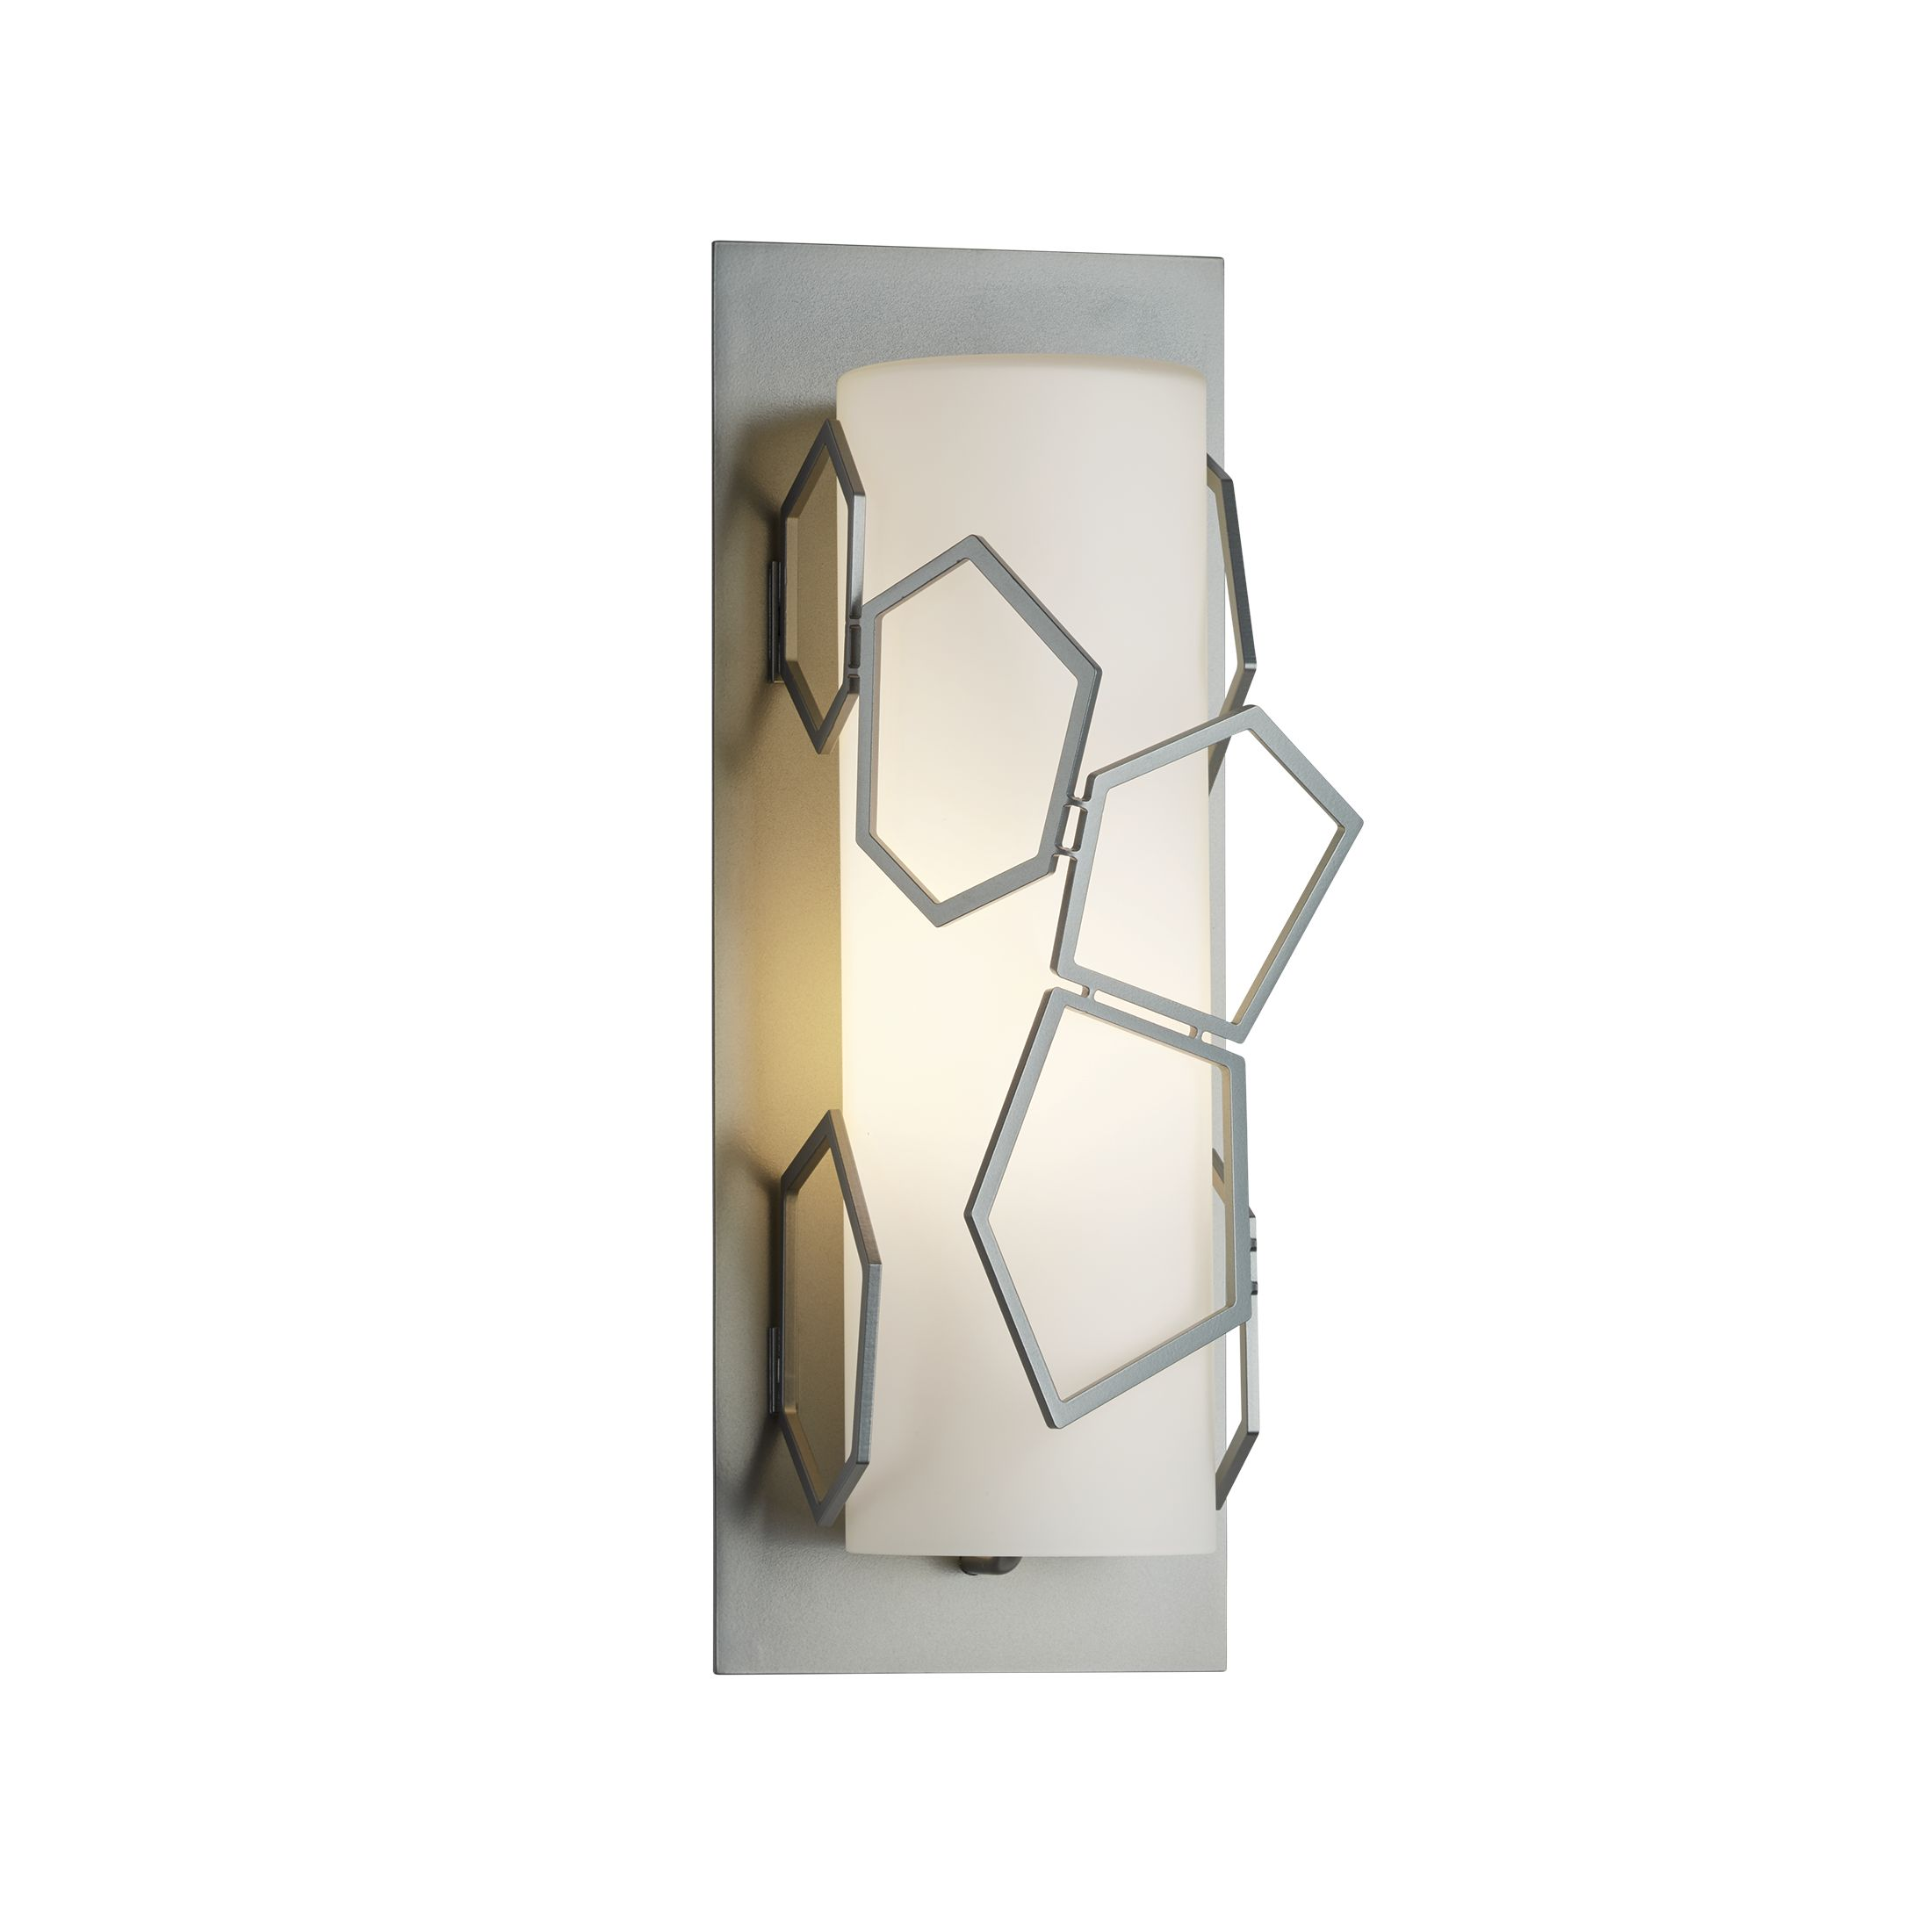 Outdoor products hubbardton forge 302812 umbra large outdoor sconce aloadofball Image collections